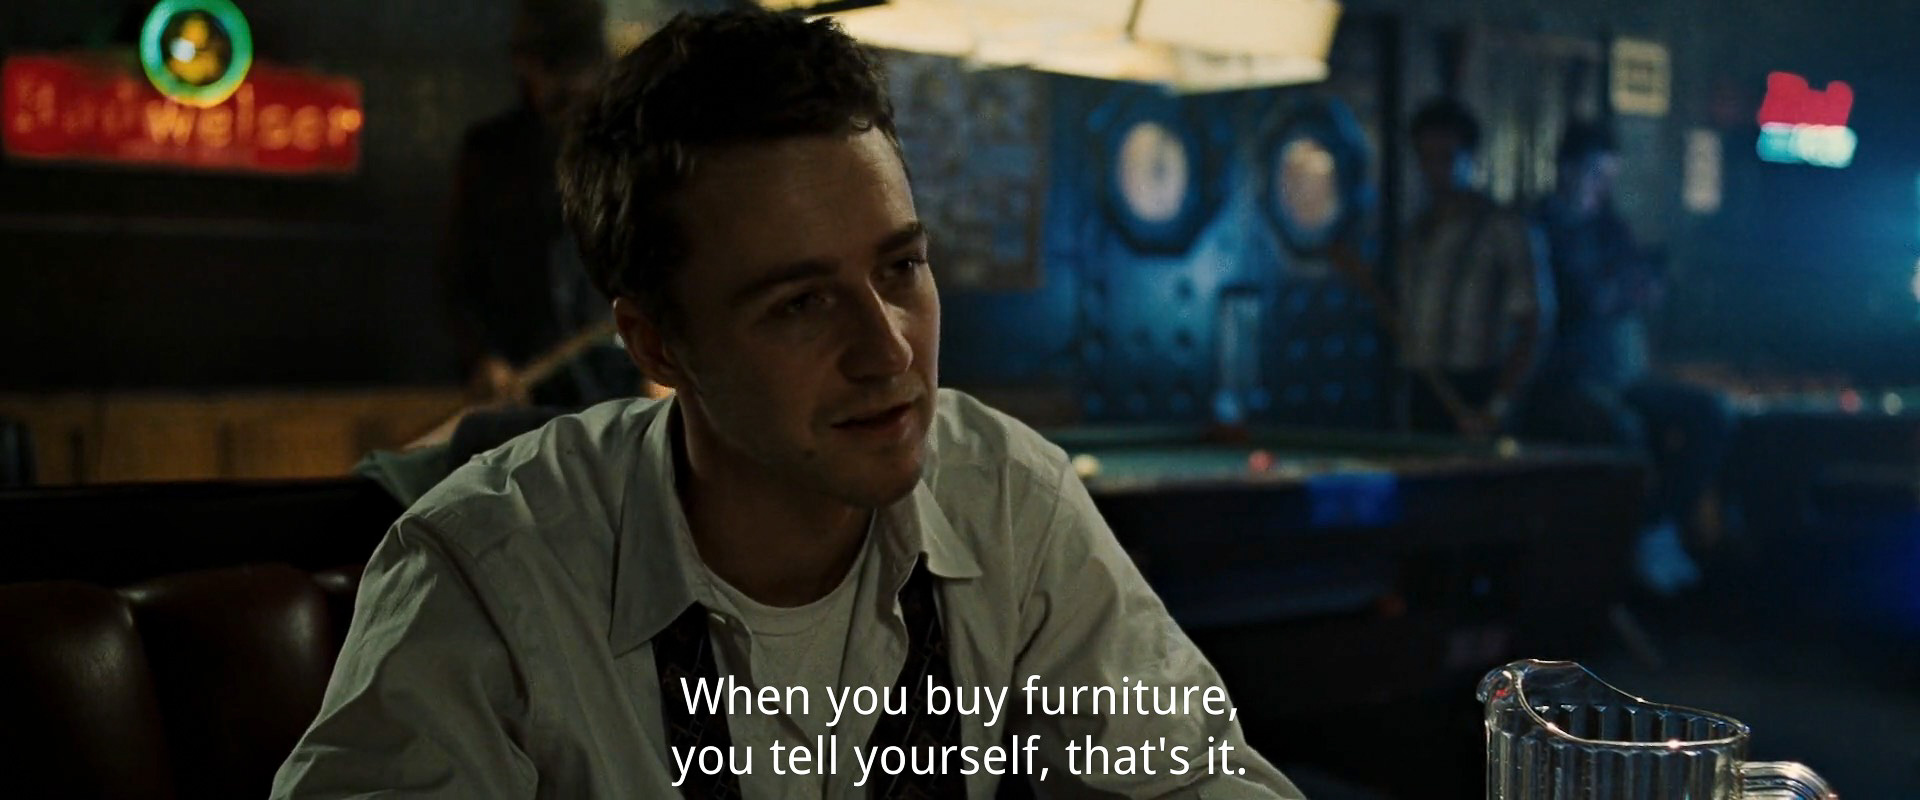 fight club cinematography life lessons-11.jpg